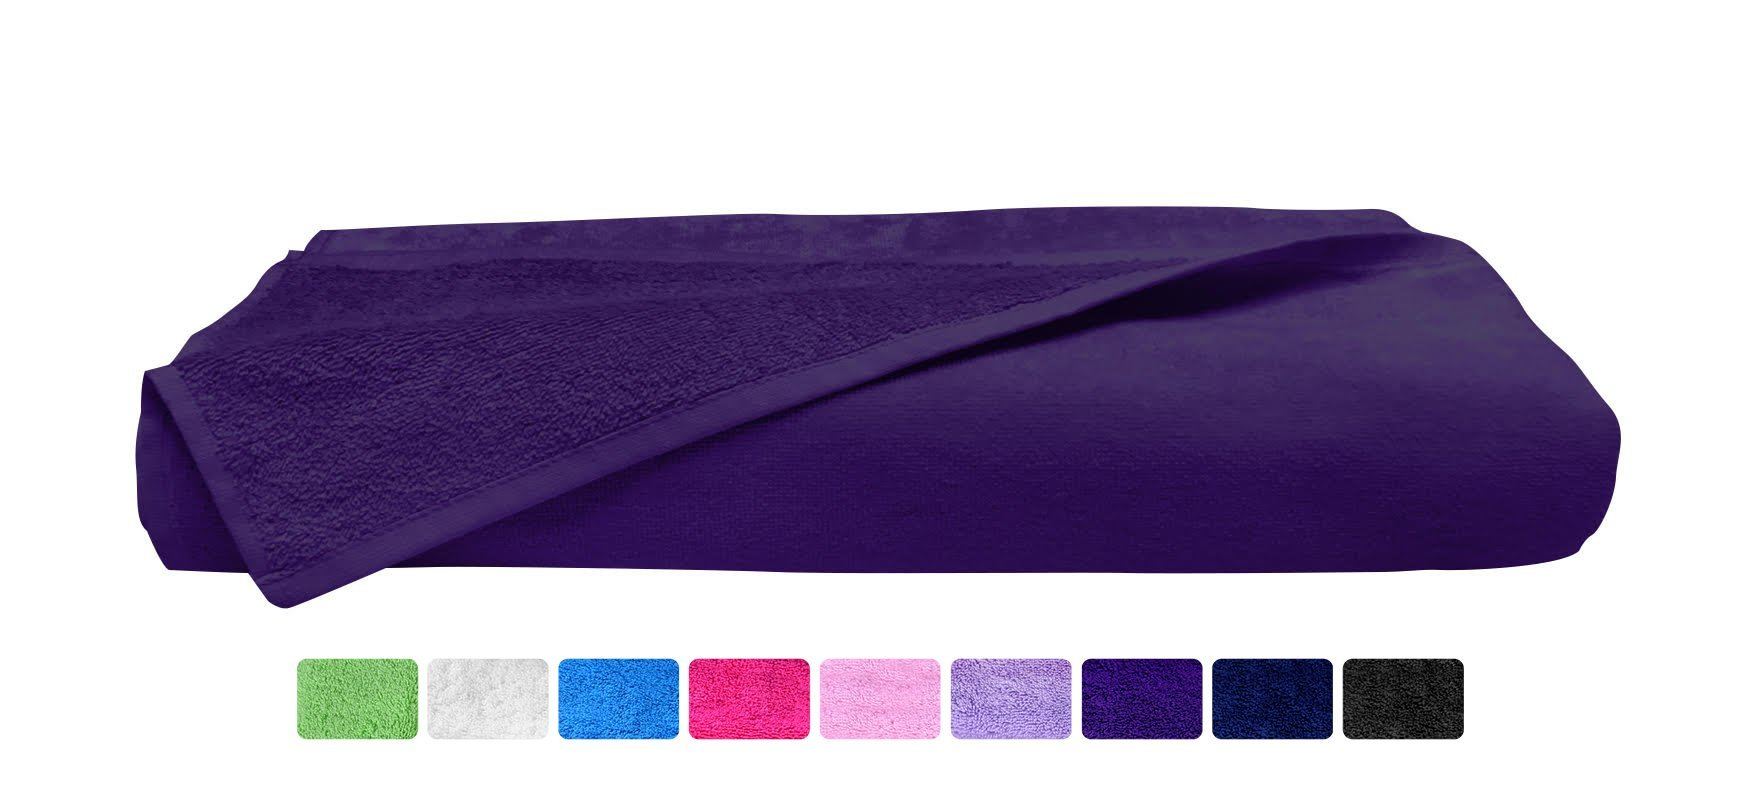 Beach Towel - Extra Large - Purple - %100 Soft Turkish Cotton ( 35'' x 59'' ) ( Hotel Spa Bath Collection ) - Absorbent, Quick-Dry Eco Friendly (Purple, Pack of 8 Towels)